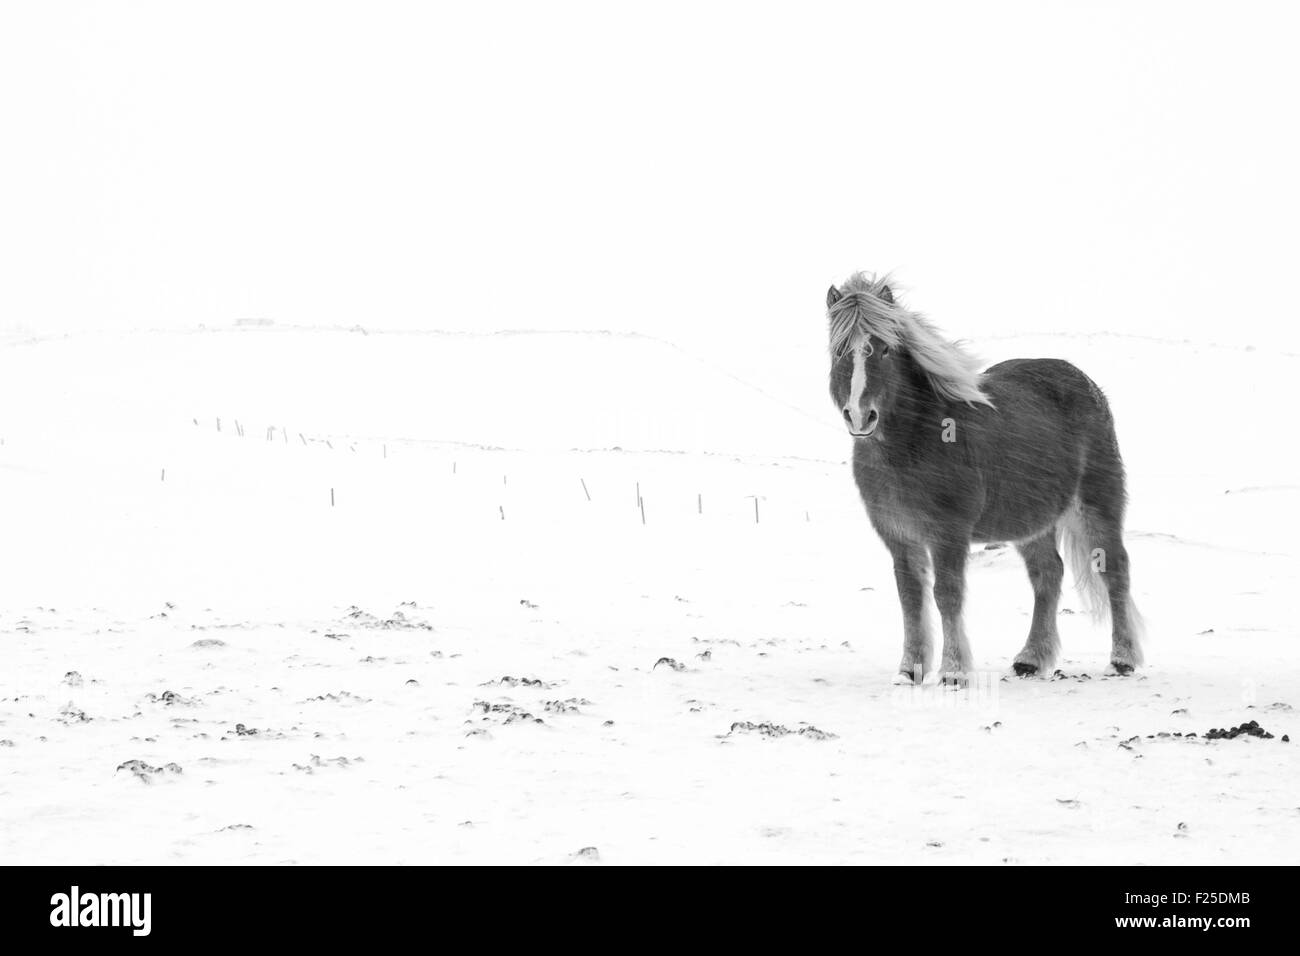 Iceland, North Coast, Horse in the snow storm, black and white - Stock Image